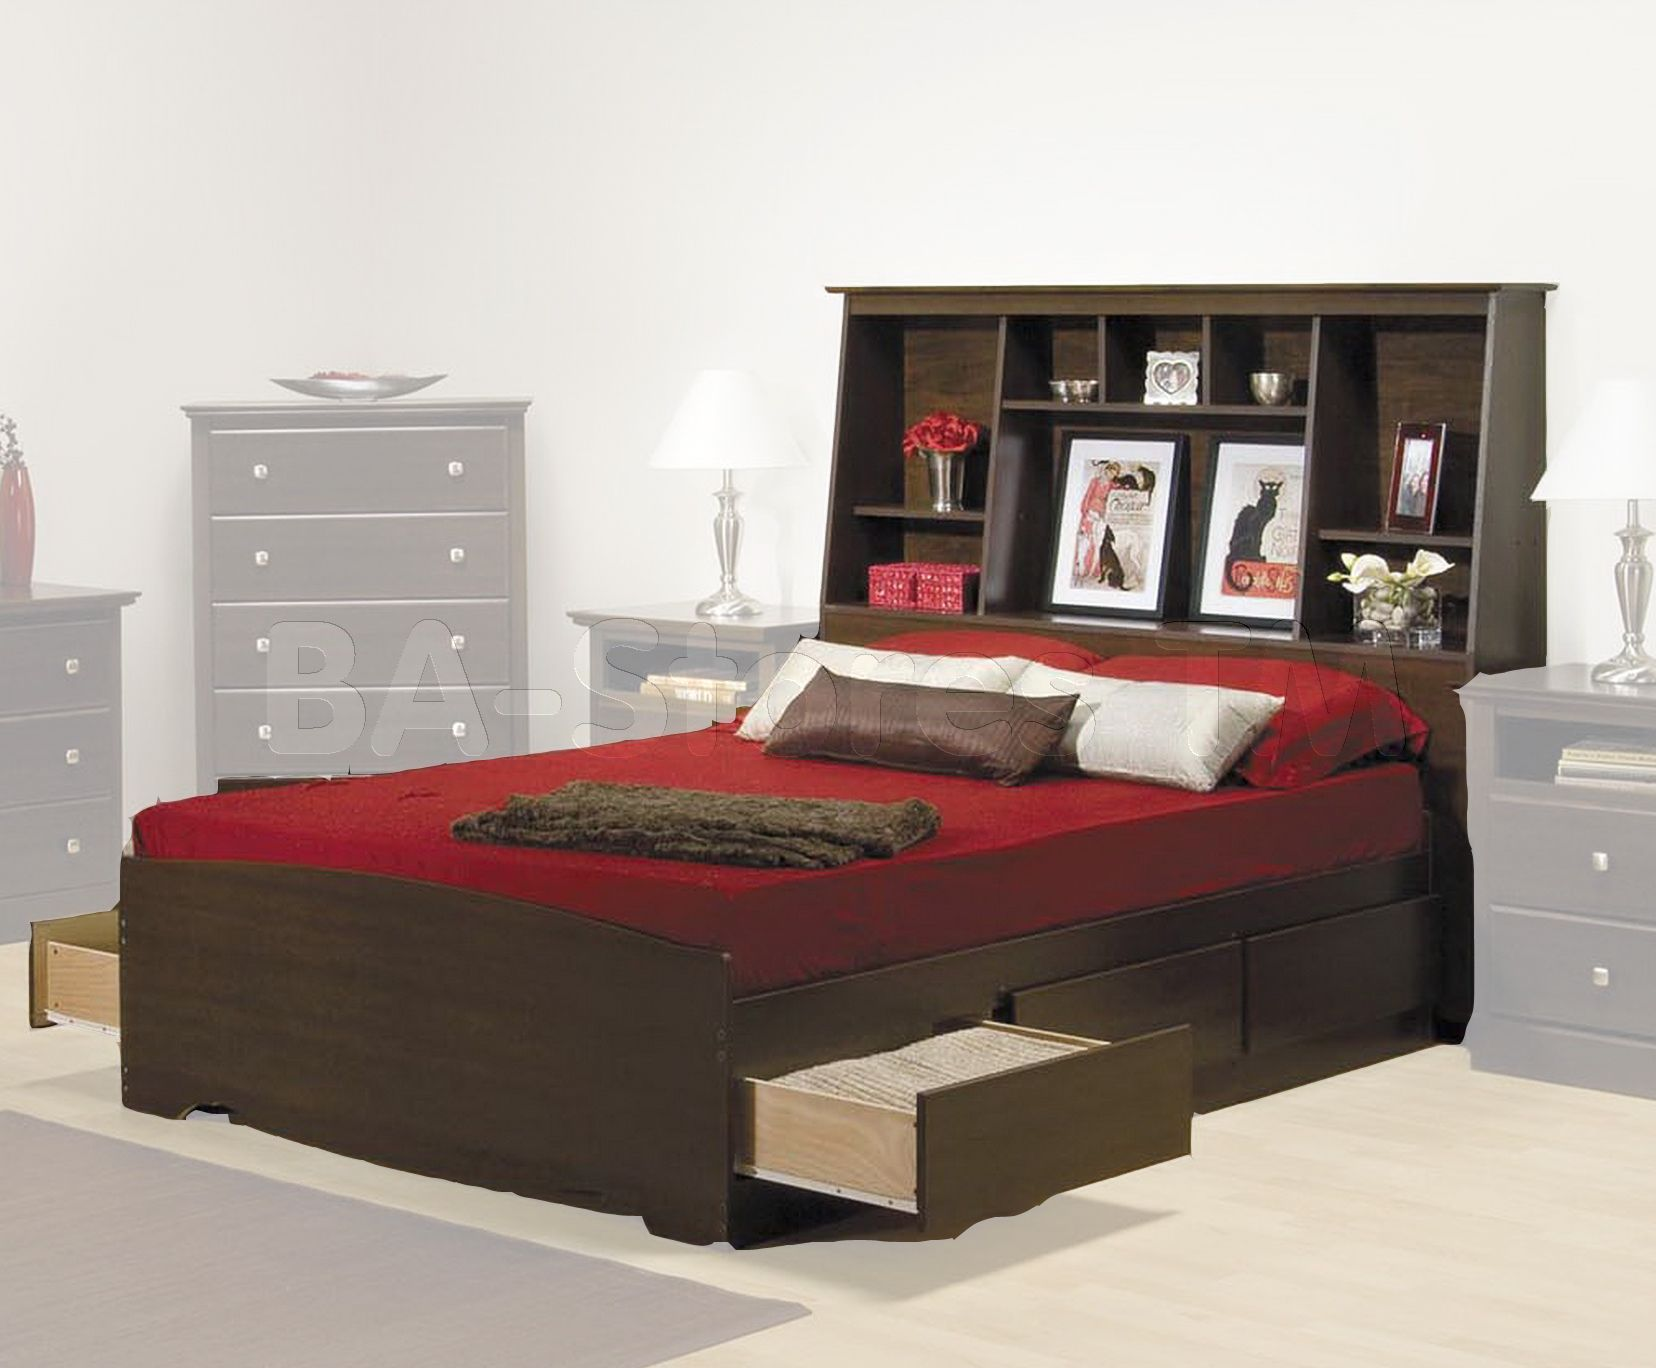 Prepac fremont platform storage bed with bookcase Bed headboard design